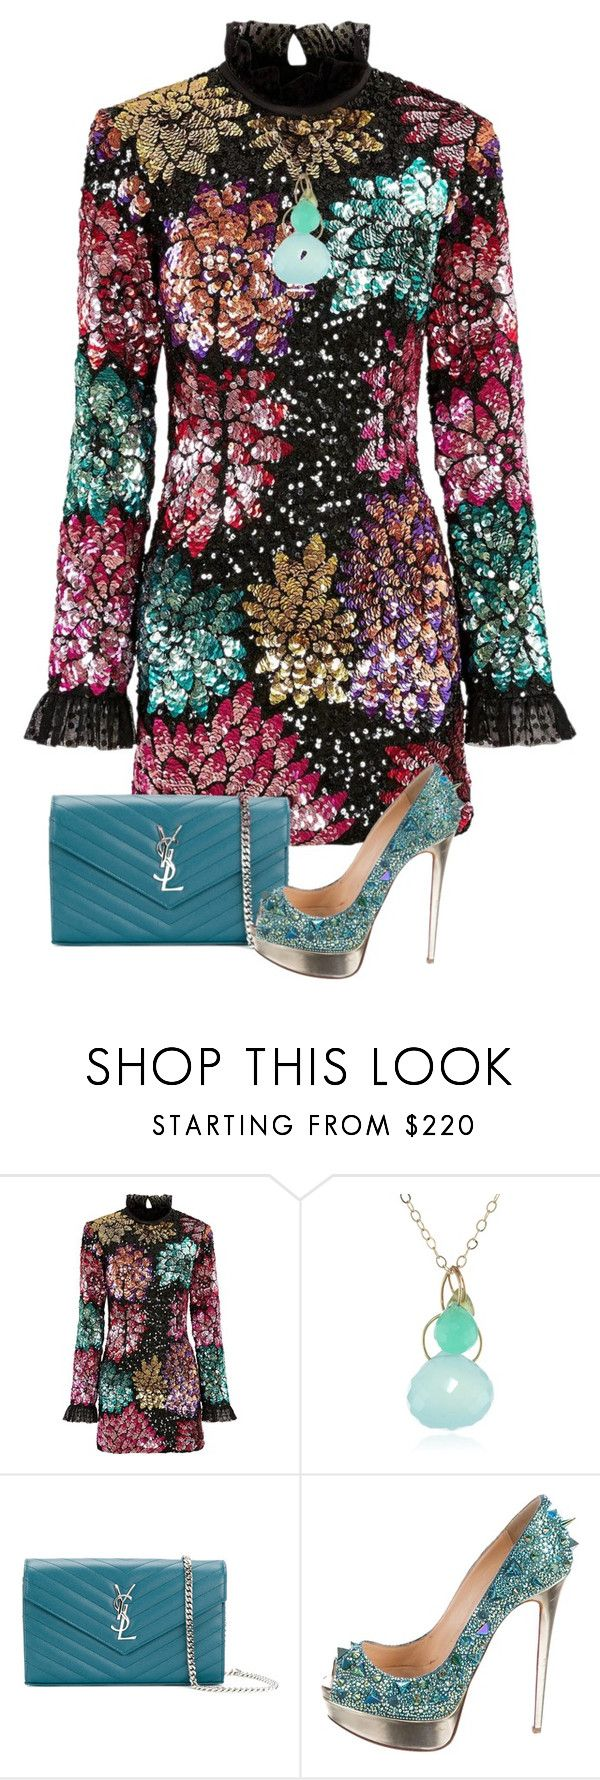 """""""Time to celebrate"""" by dlittlejohn ❤ liked on Polyvore featuring Millie Mackintosh, Melissa Joy Manning, Yves Saint Laurent, Christian Louboutin, Pumps, dress, bag and necklace"""